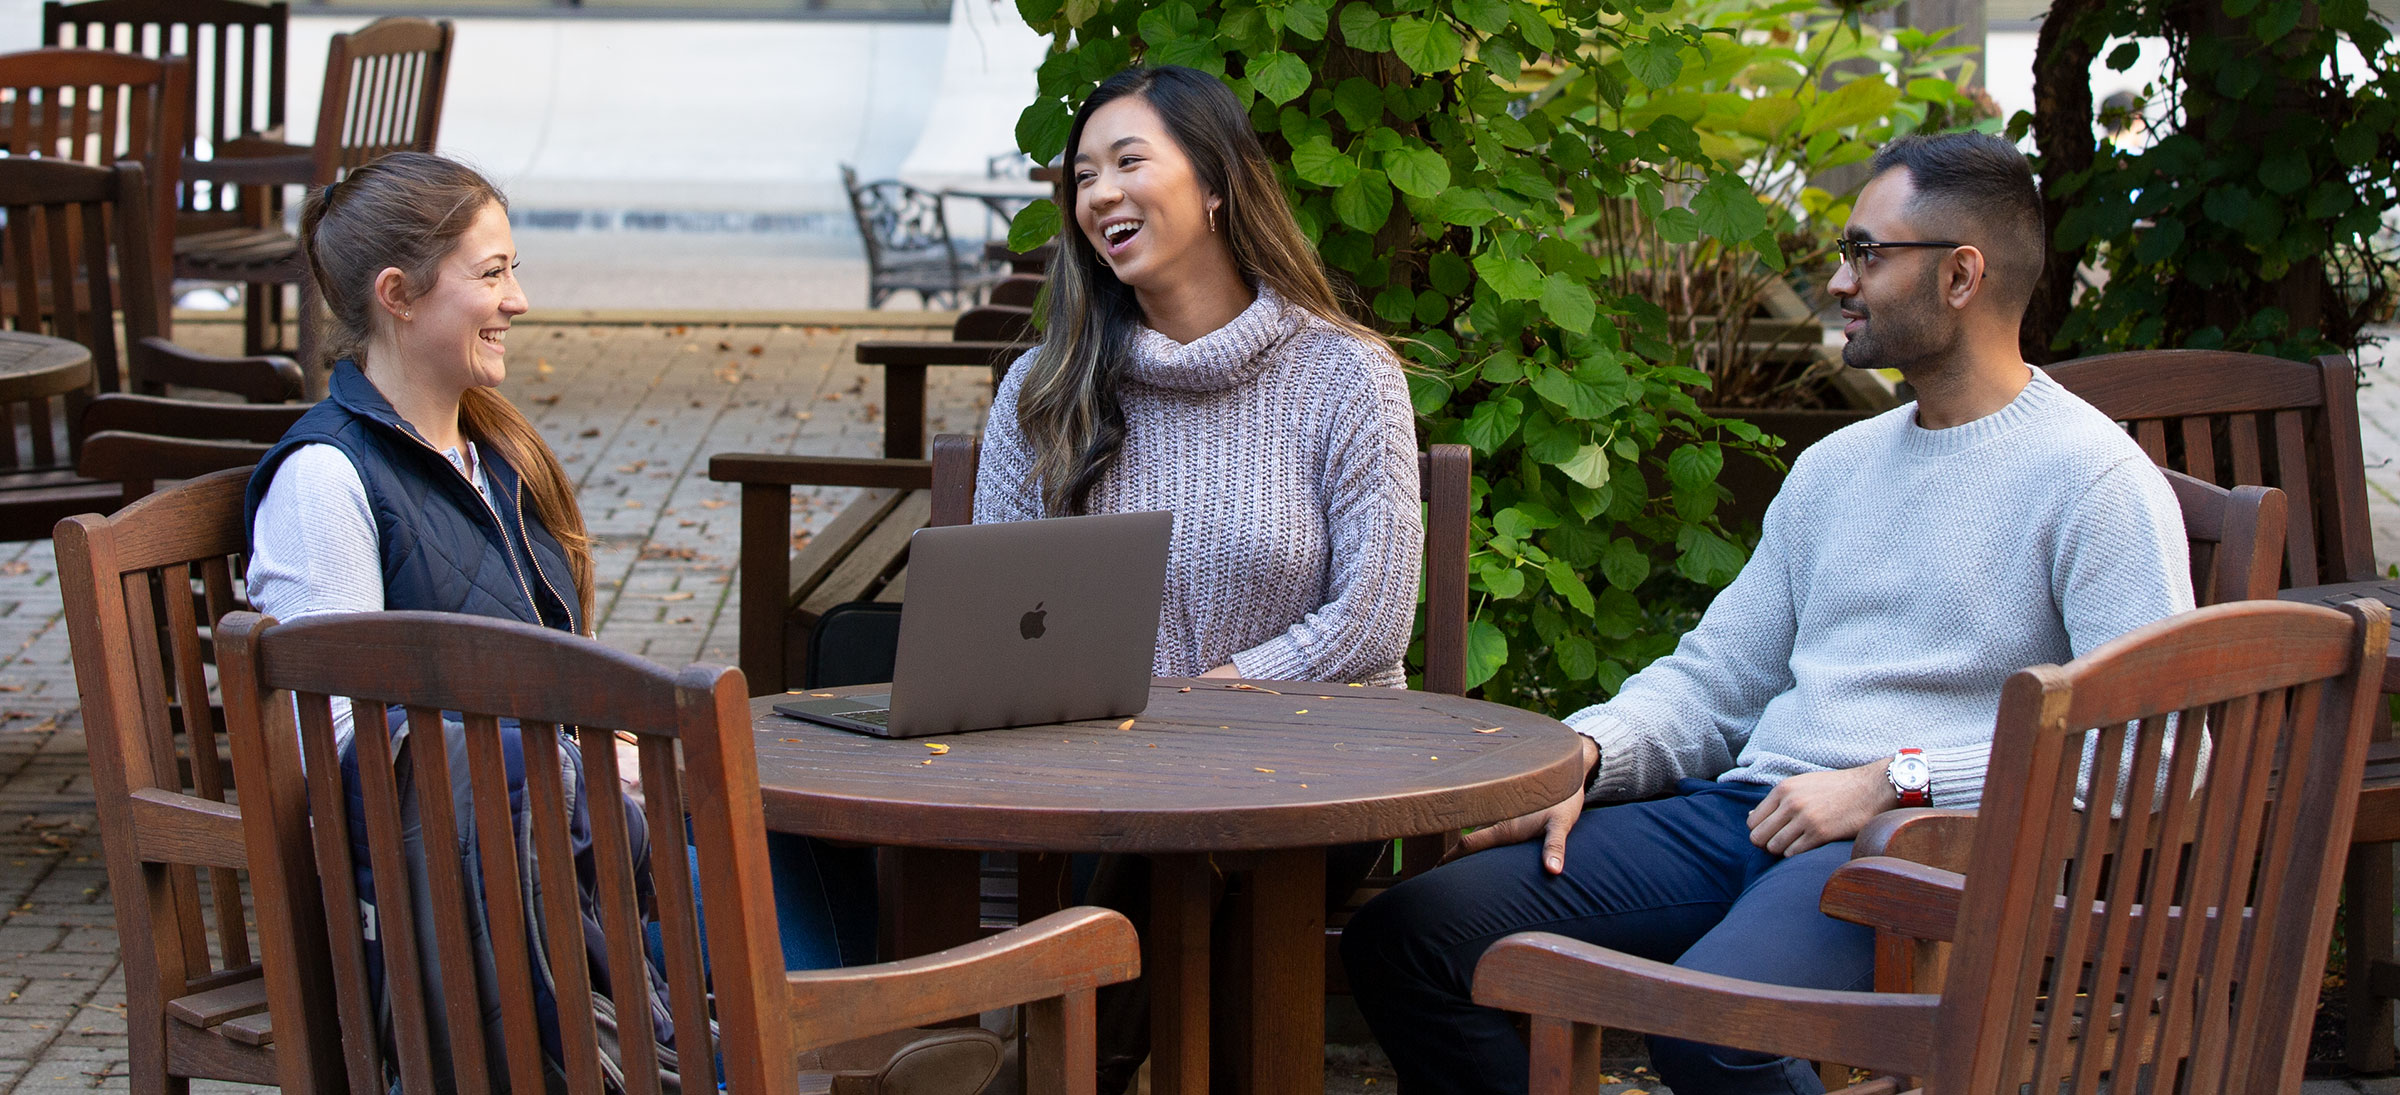 Three Penn State College of Medicine students are seen sitting in an outdoor courtyard in fall 2019, laughing together. A laptop is open on a table in front of them.